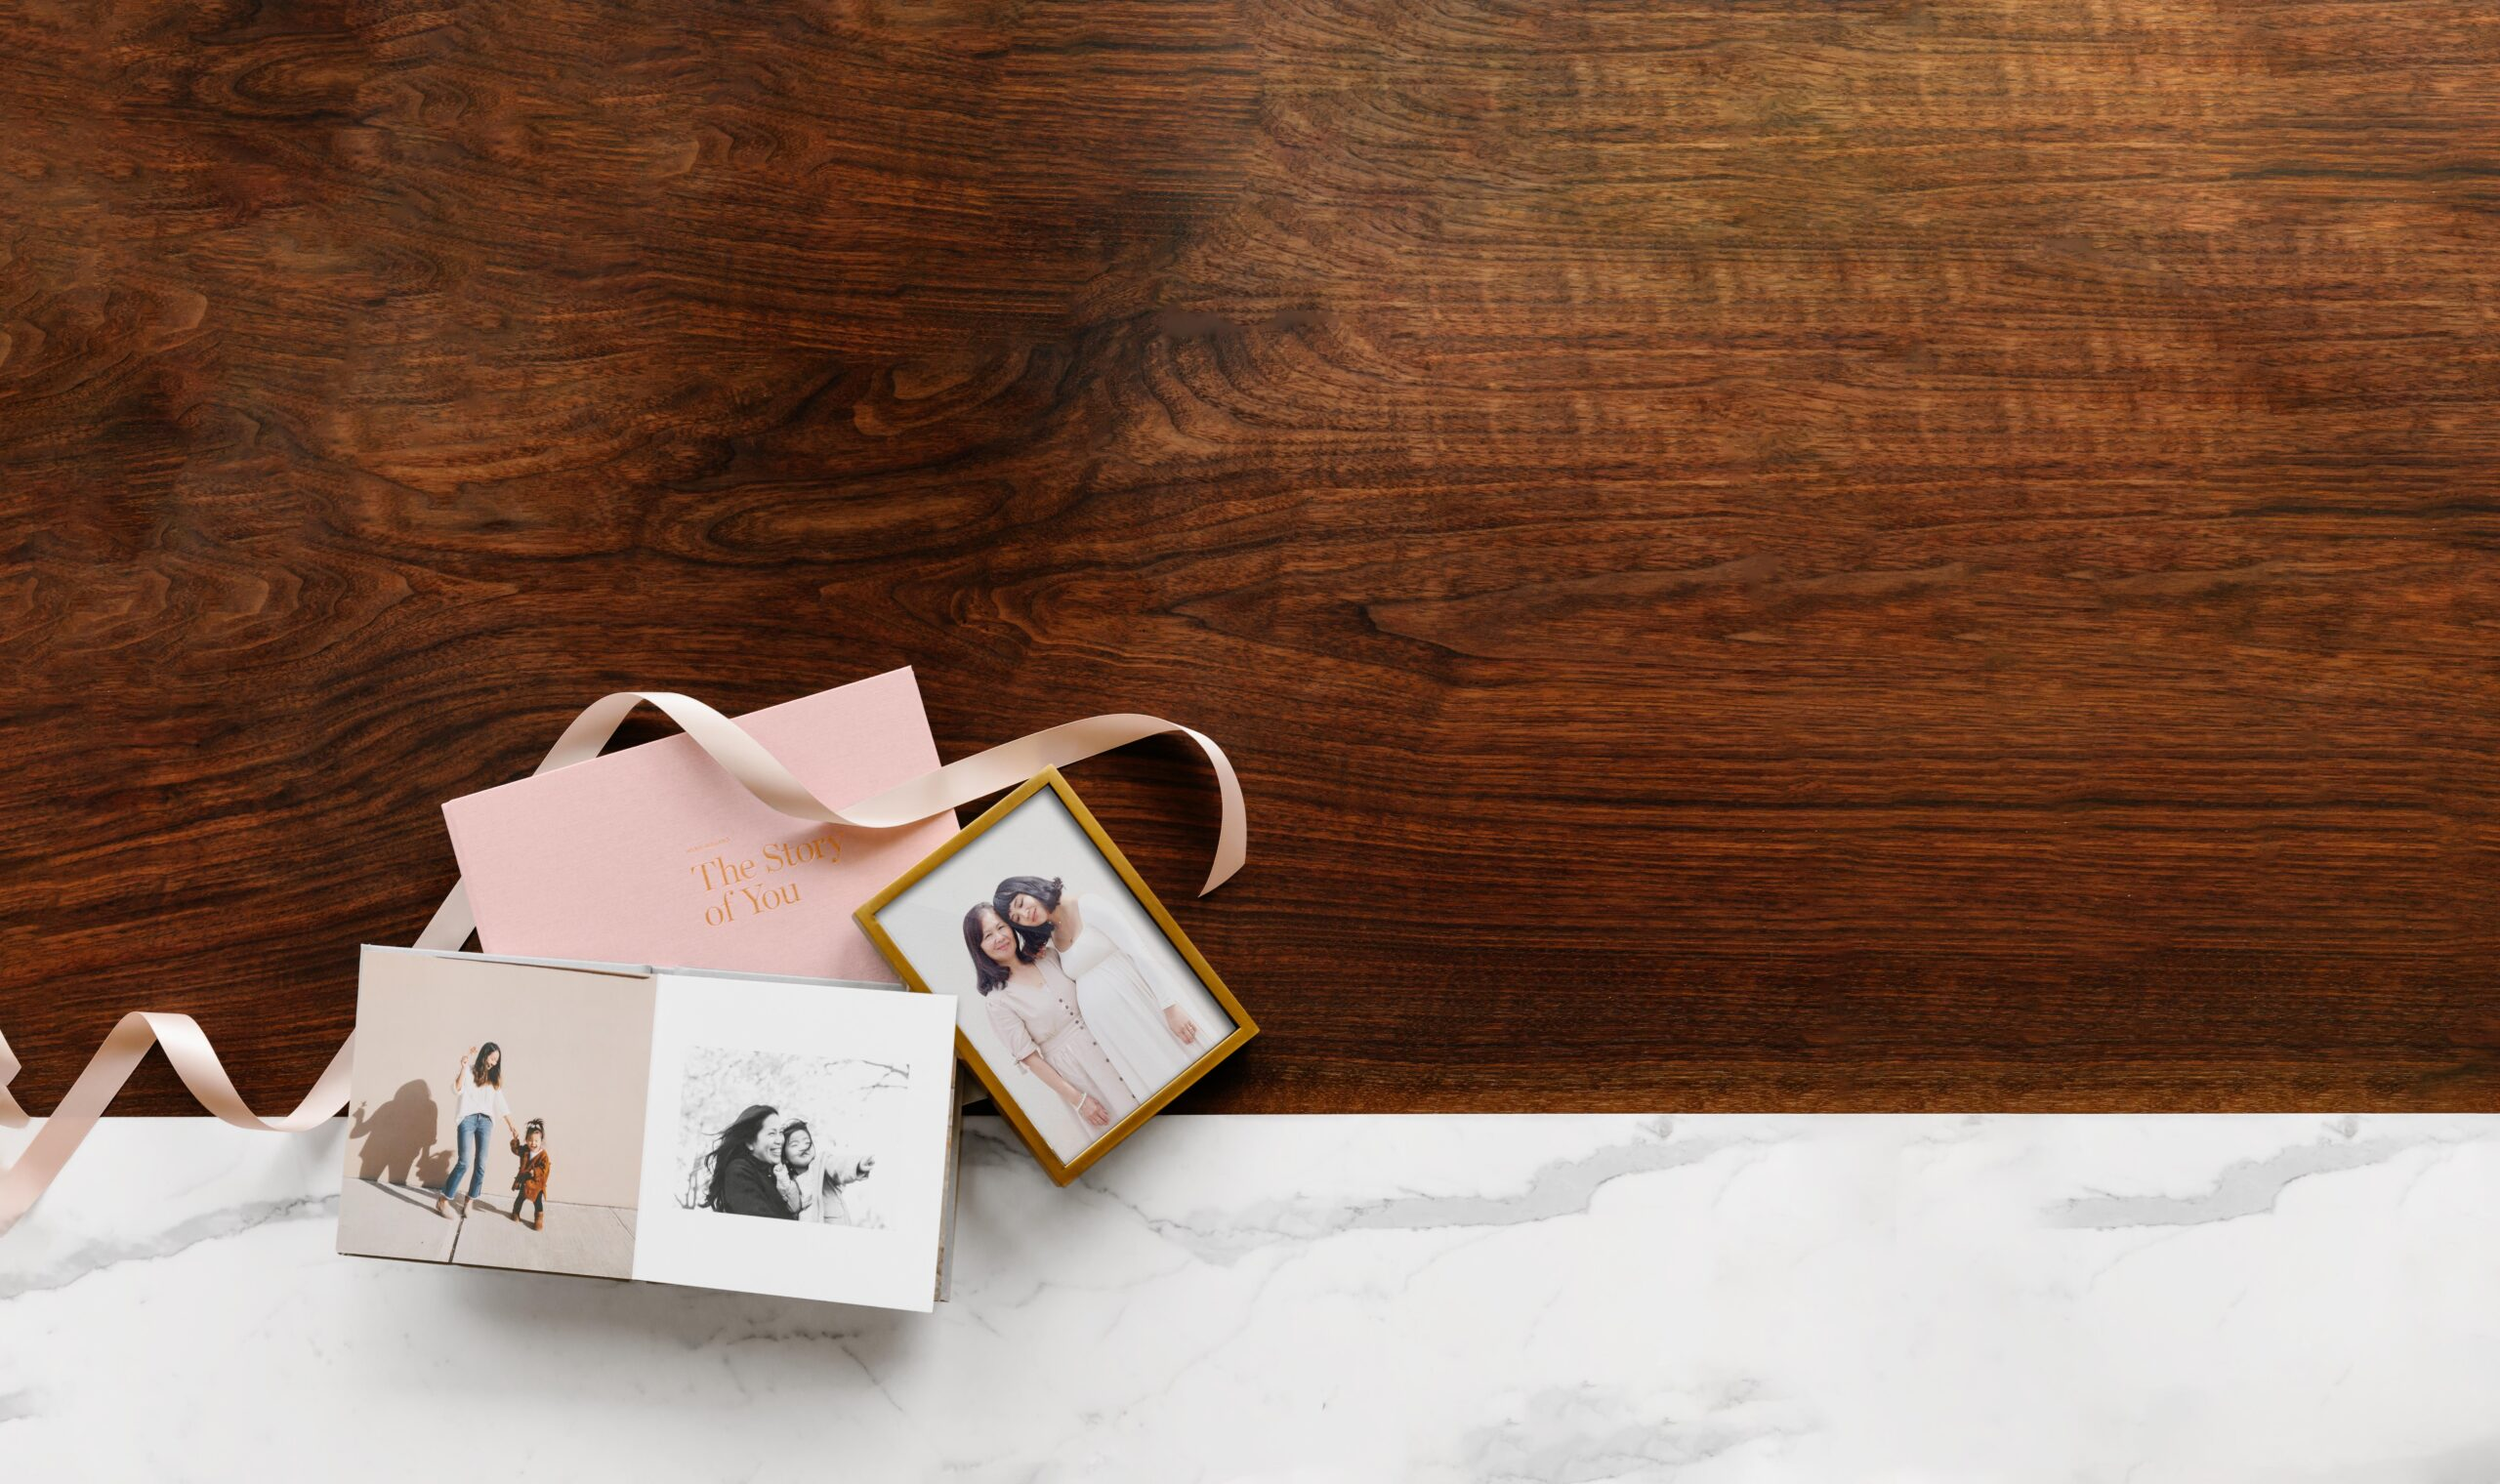 20190321-mothers-day-lifestyle-baby-book-everyday-brass-tabletop-31